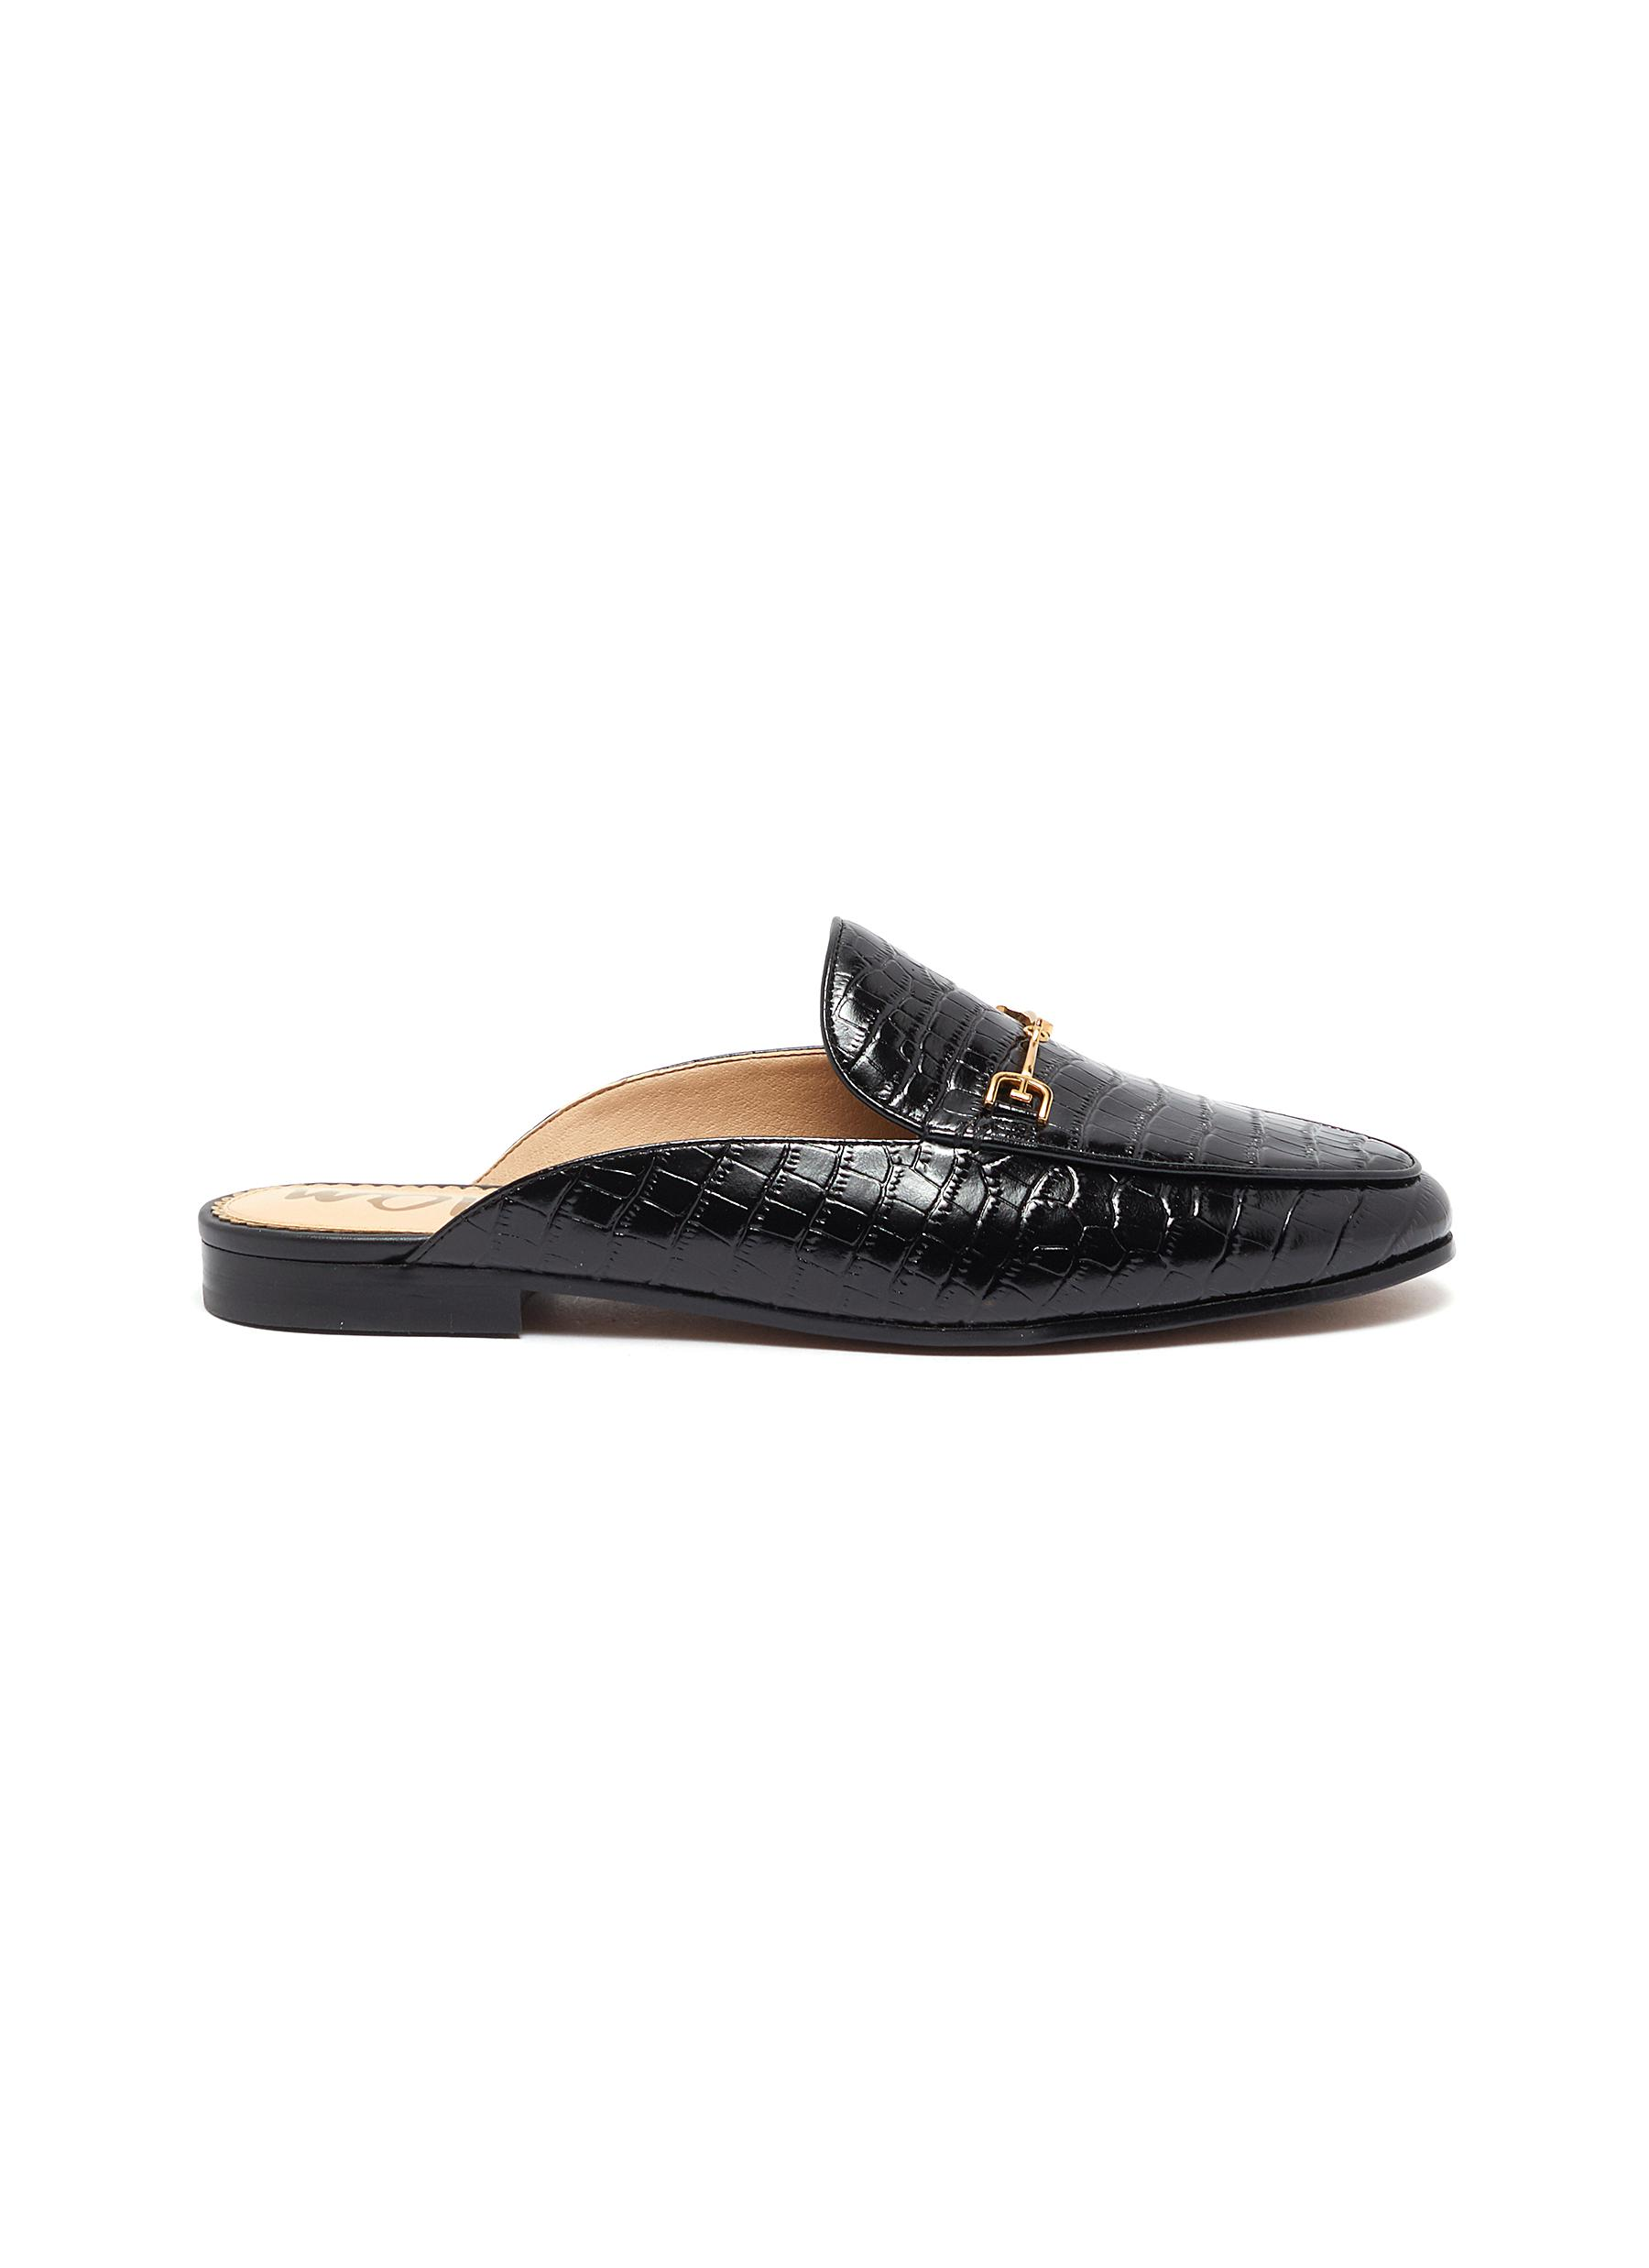 Linnie horsebit croc embossed leather loafer slides by Sam Edelman